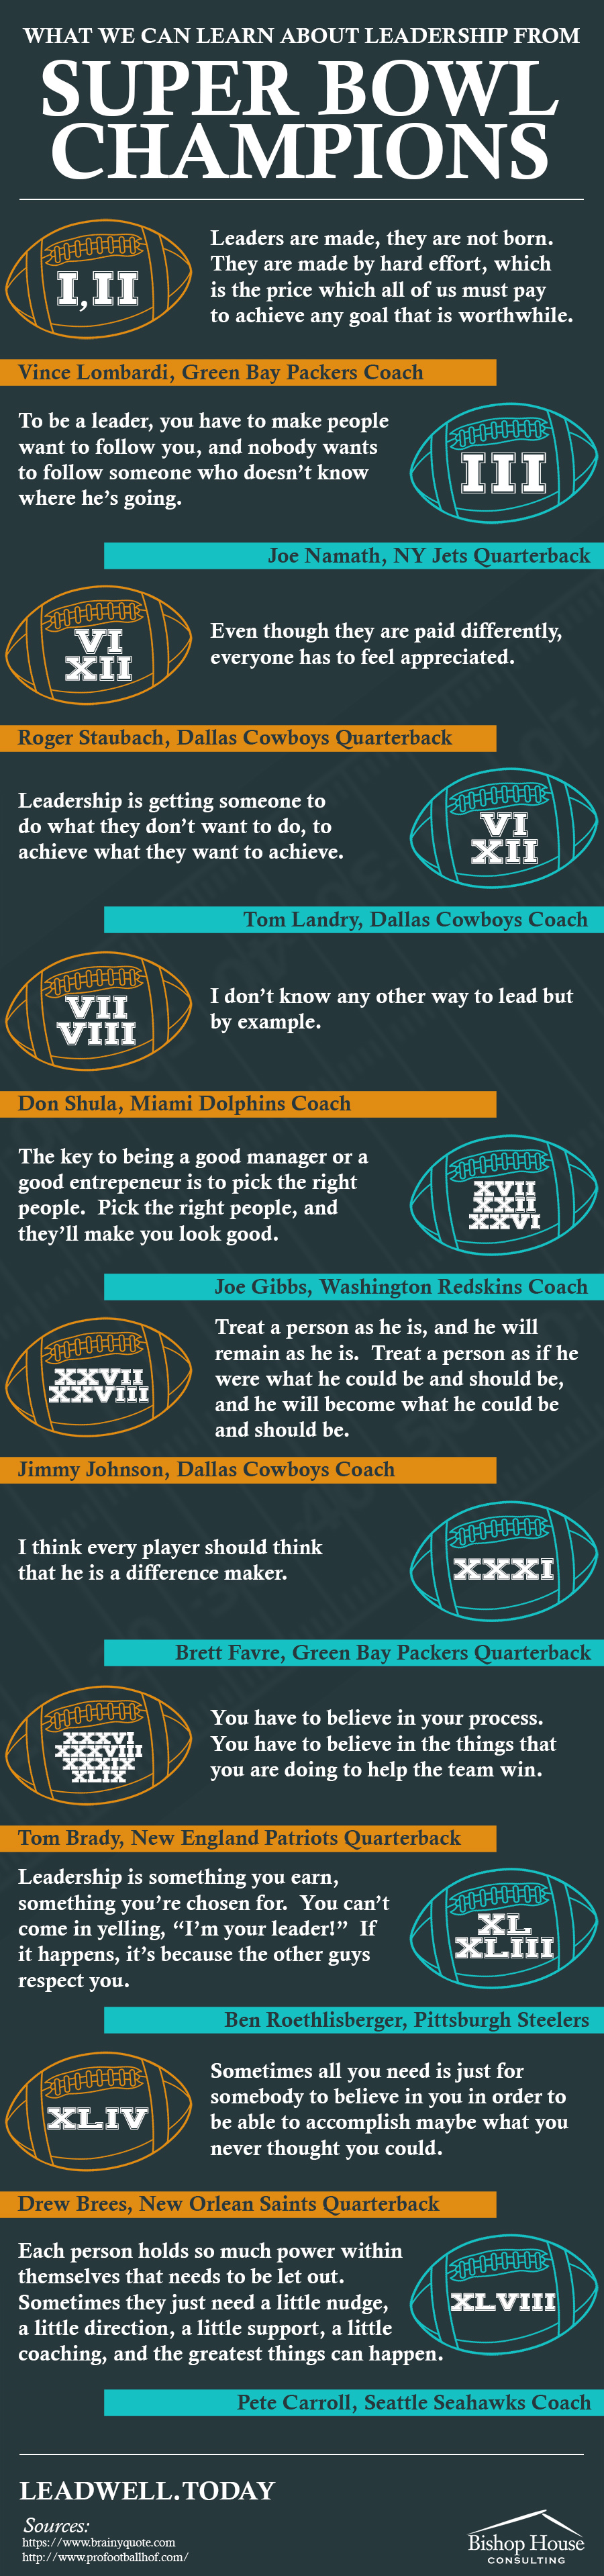 NFL Super Bowl Champion Leadership Quotes Infographic